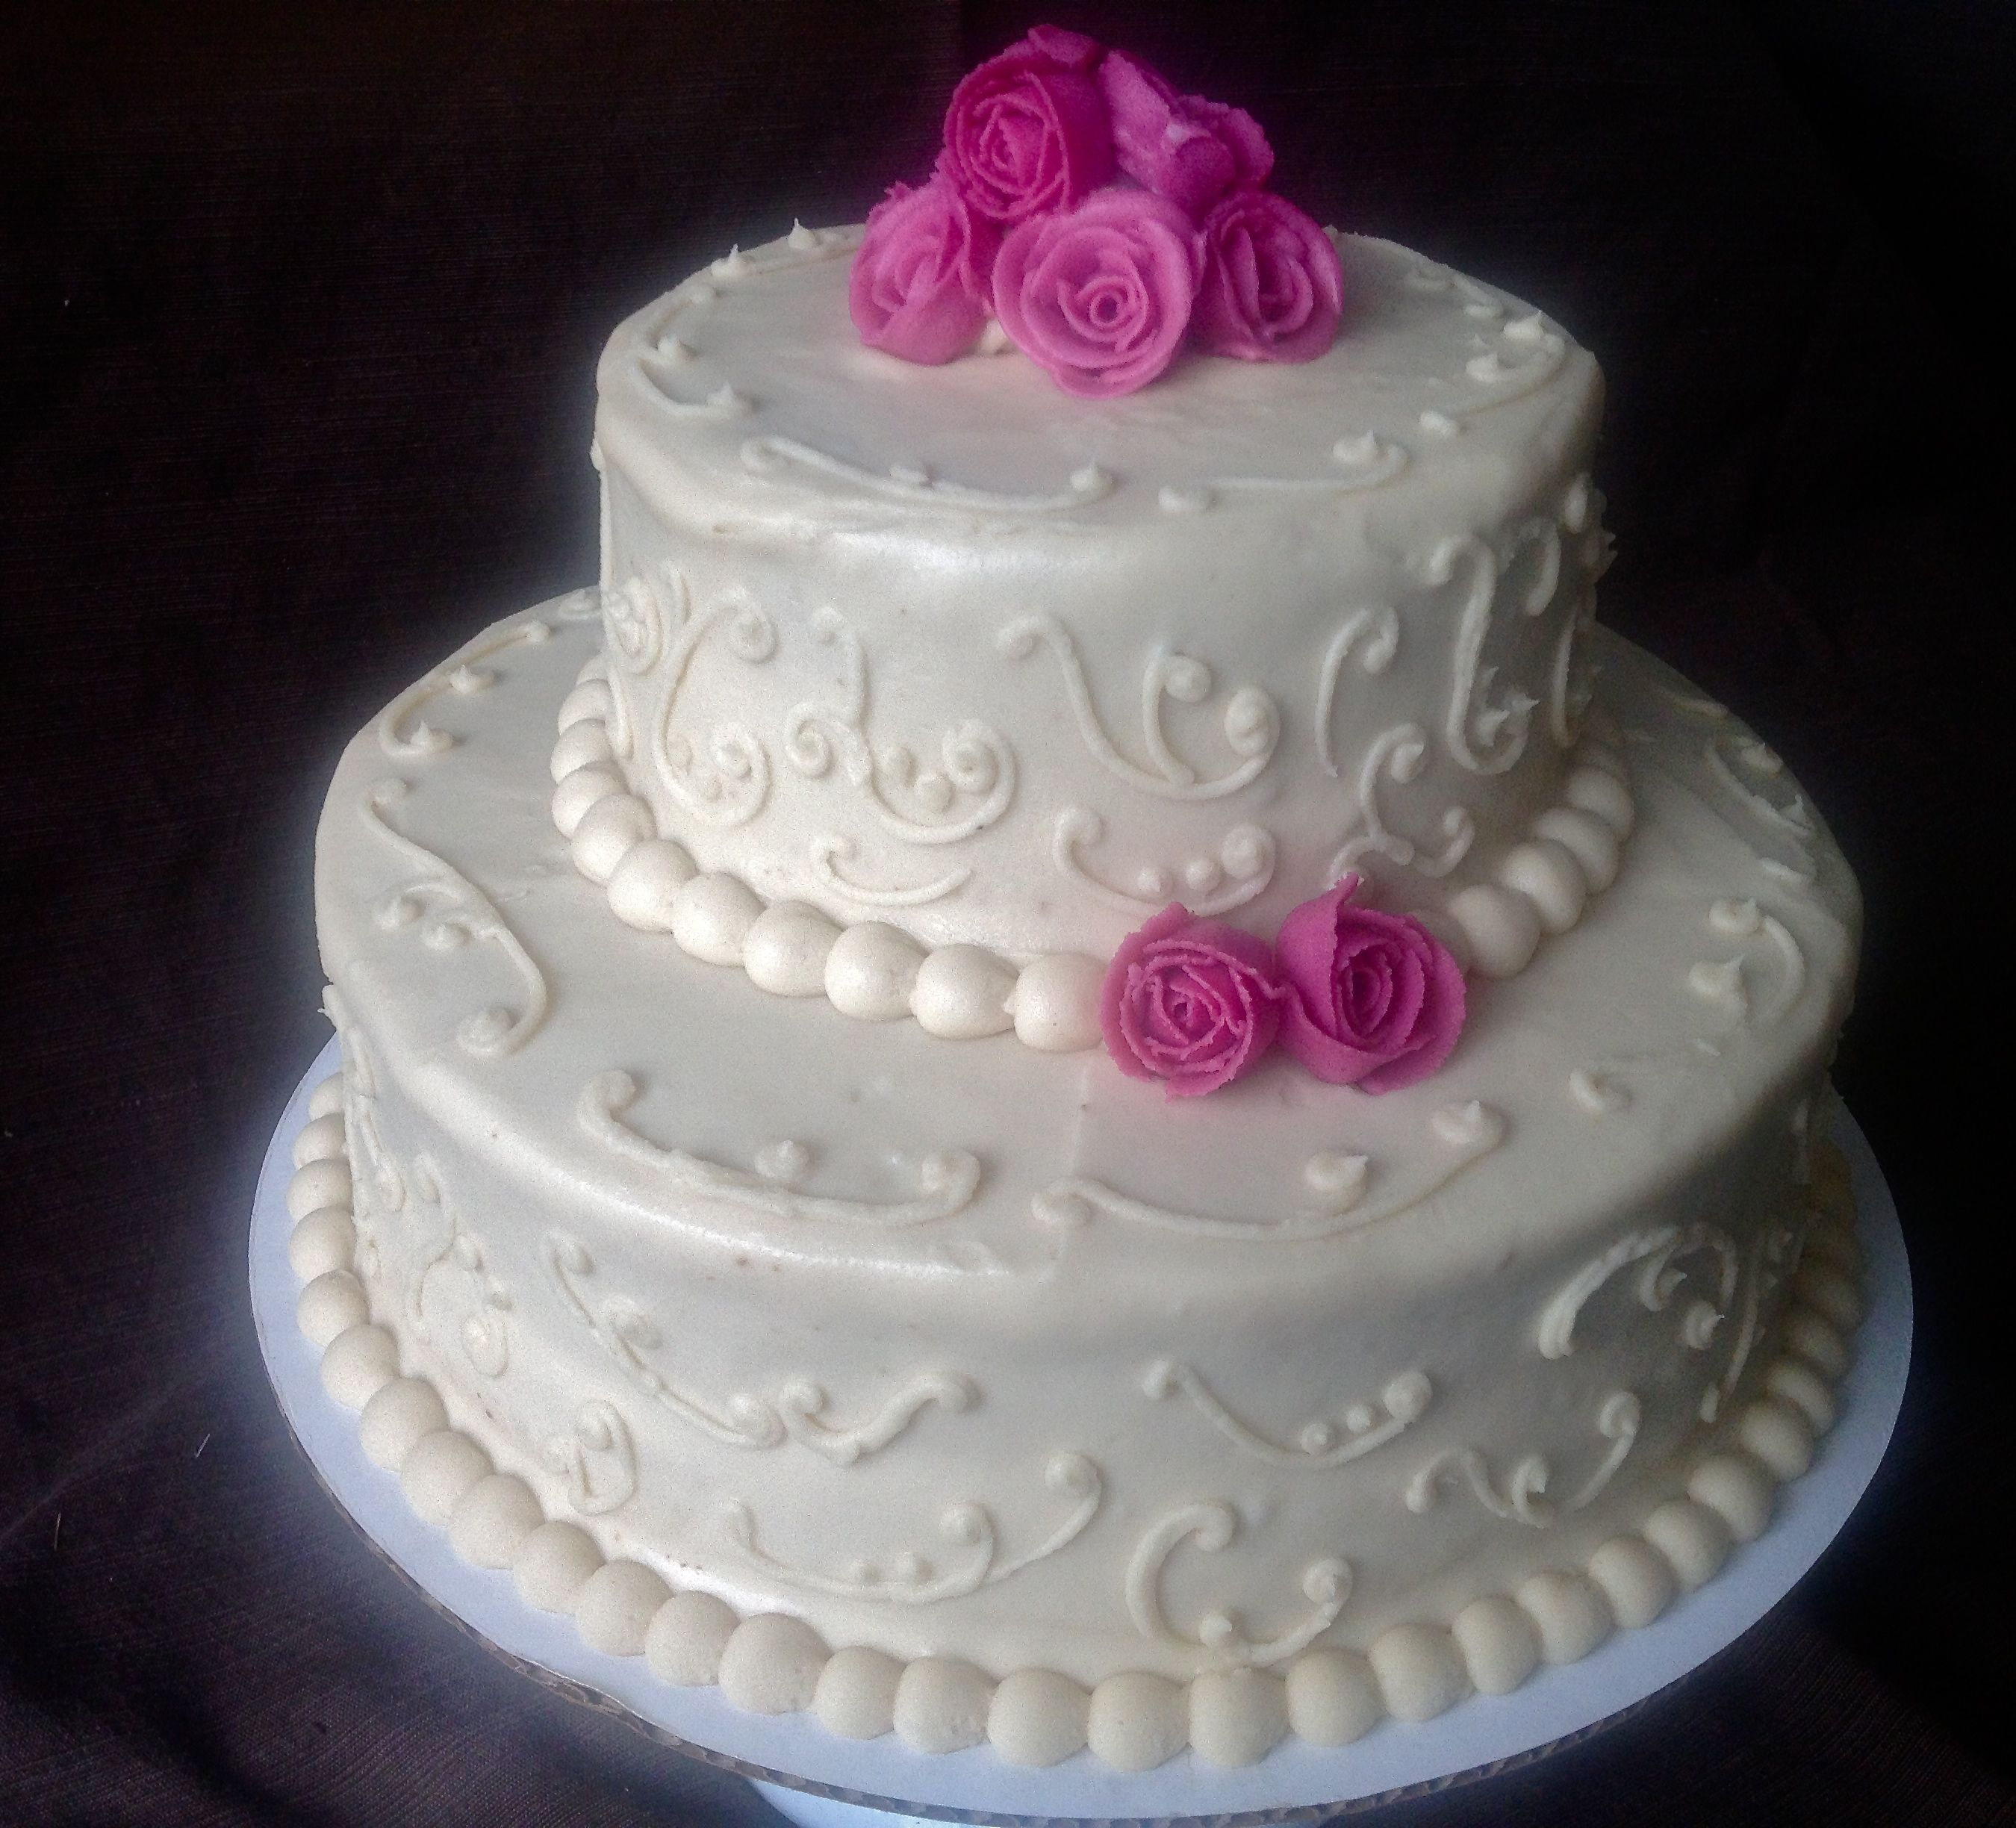 Vegan And Gluten Free Wedding Cake Ideas Alternative: We Make Vegan Wedding Cakes! Check Out Our Website Or Call